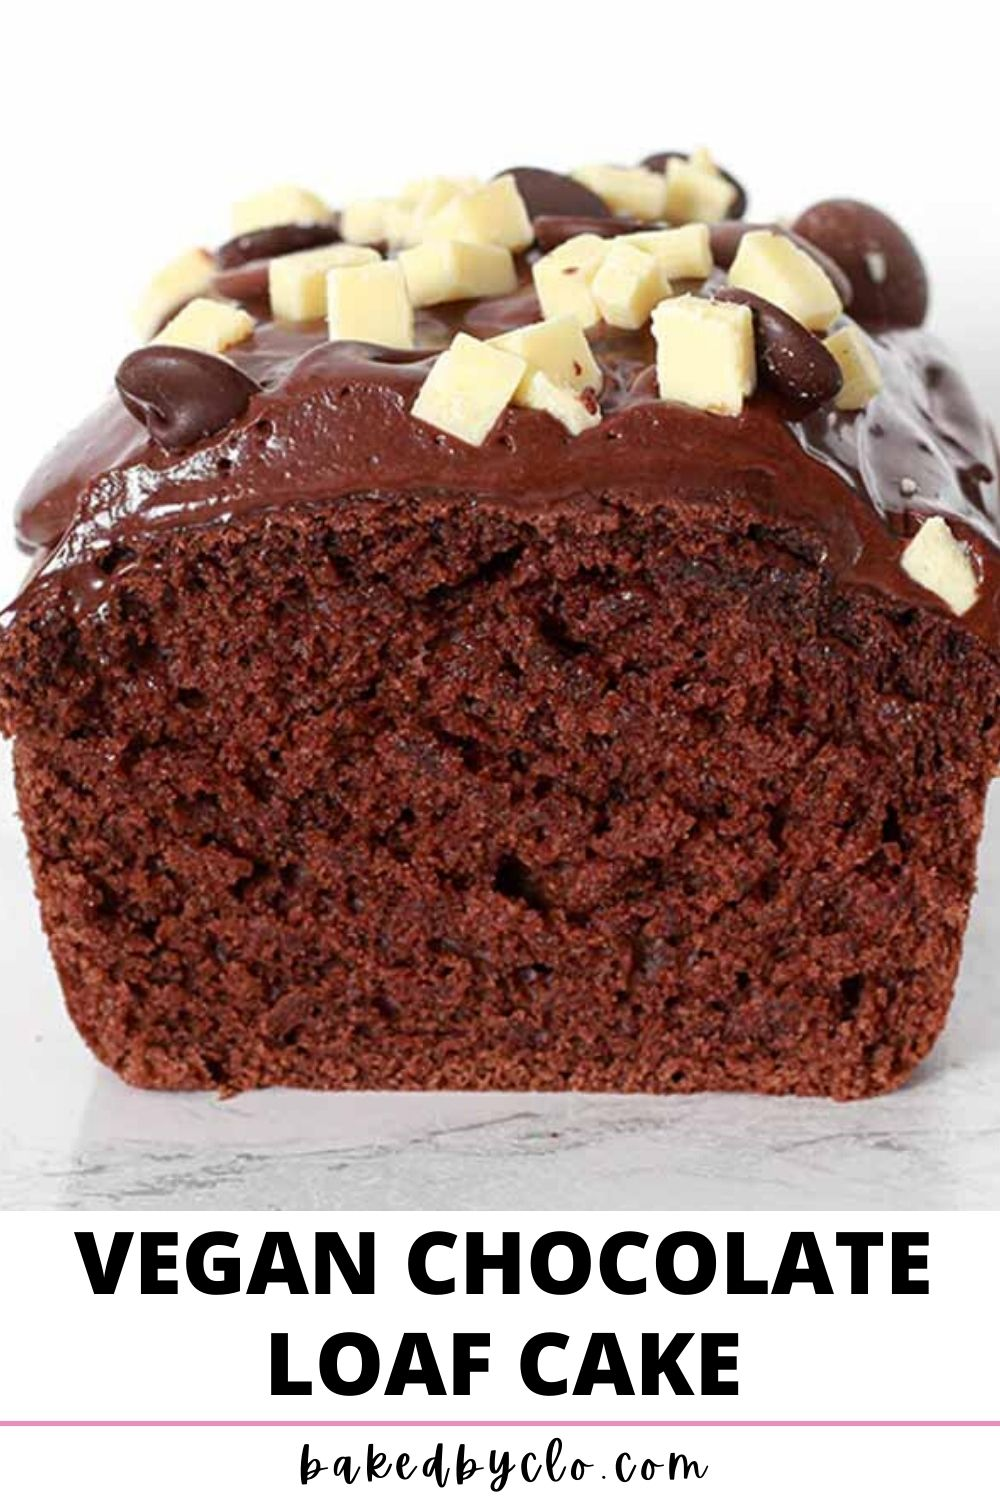 Pinterest Pin of the front of the chocolate loaf cake